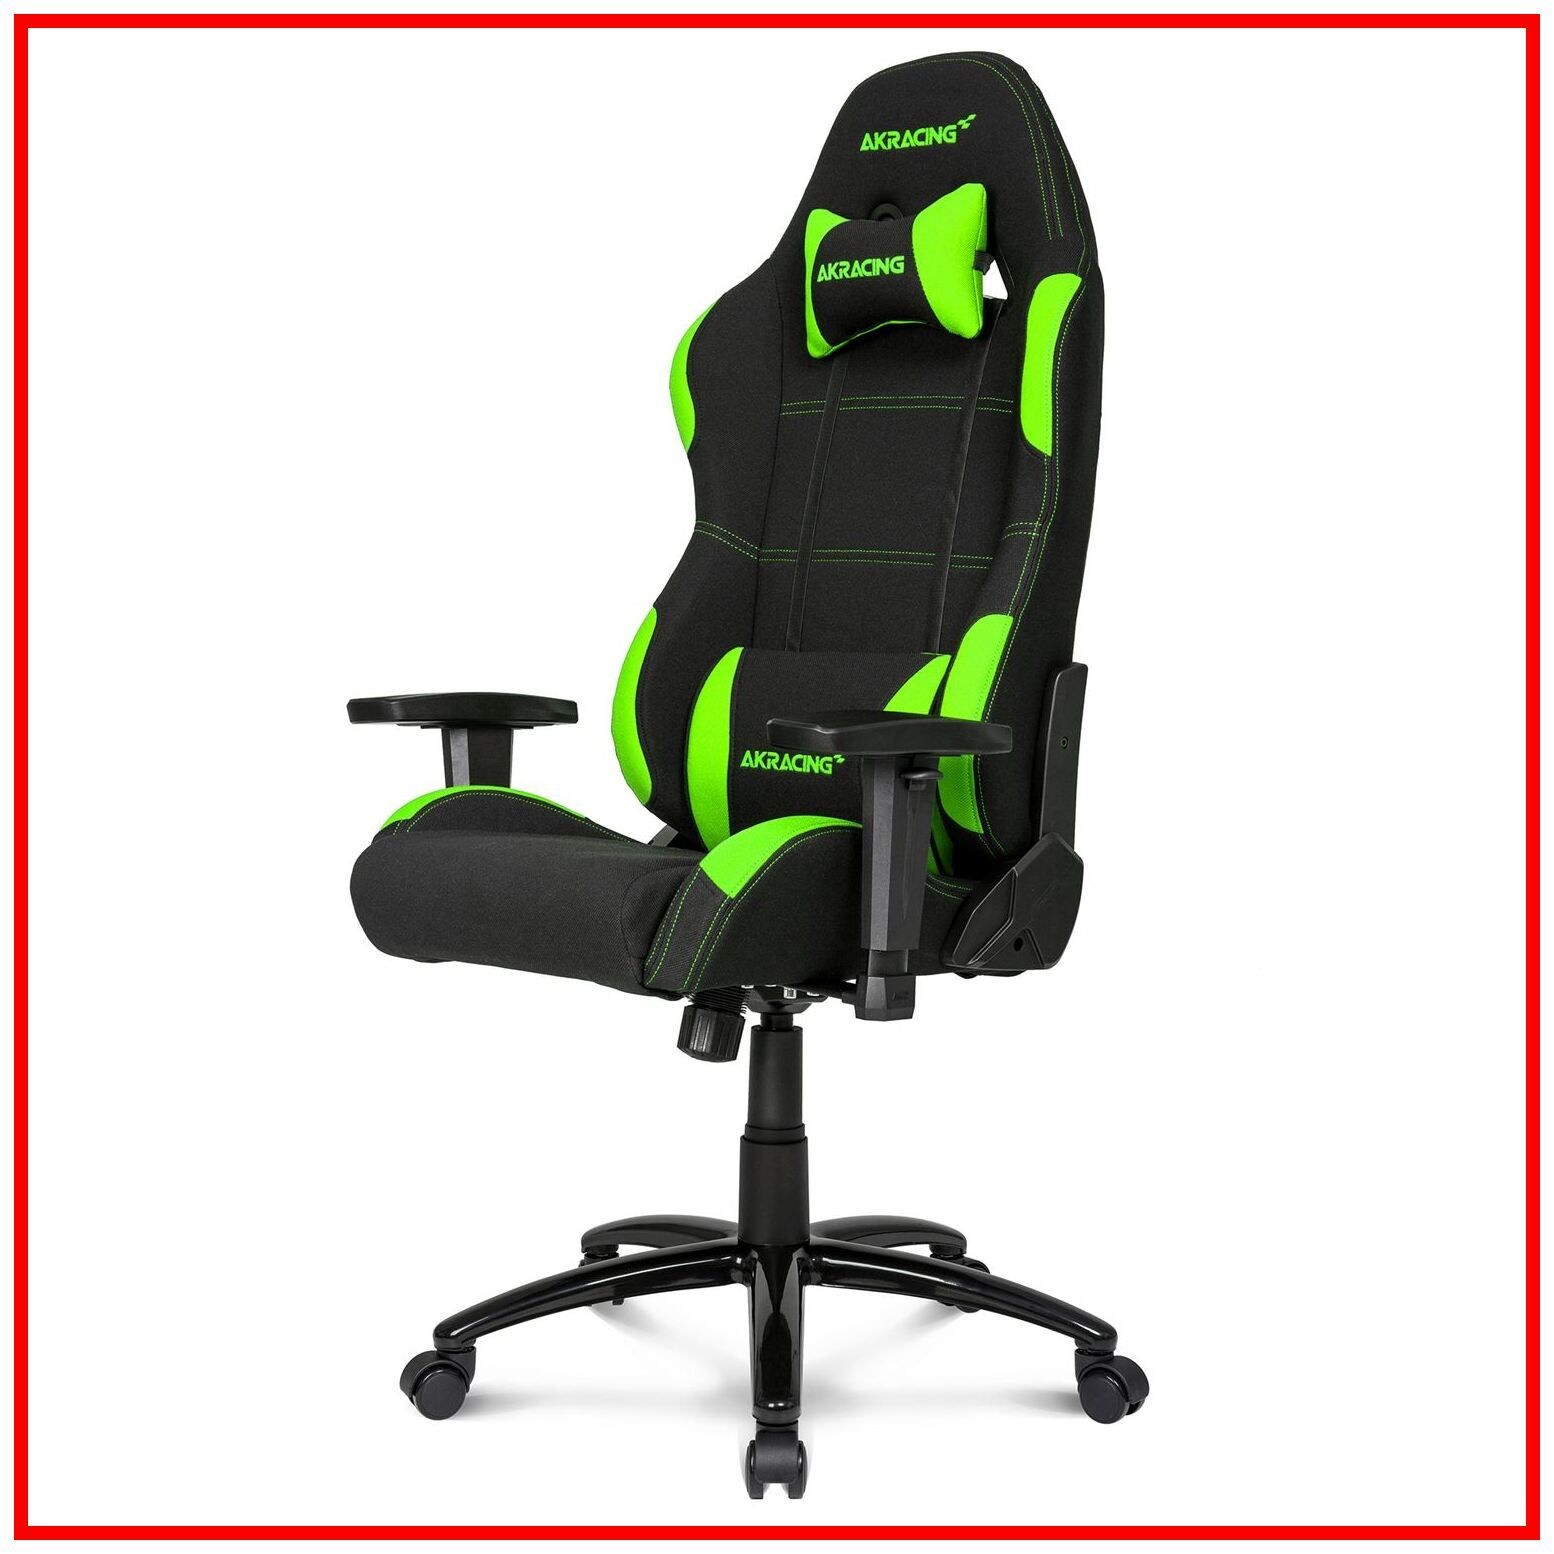 123 Reference Of Akracing Gaming Chair Philippines In 2020 Gaming Chair Chair Green Chair